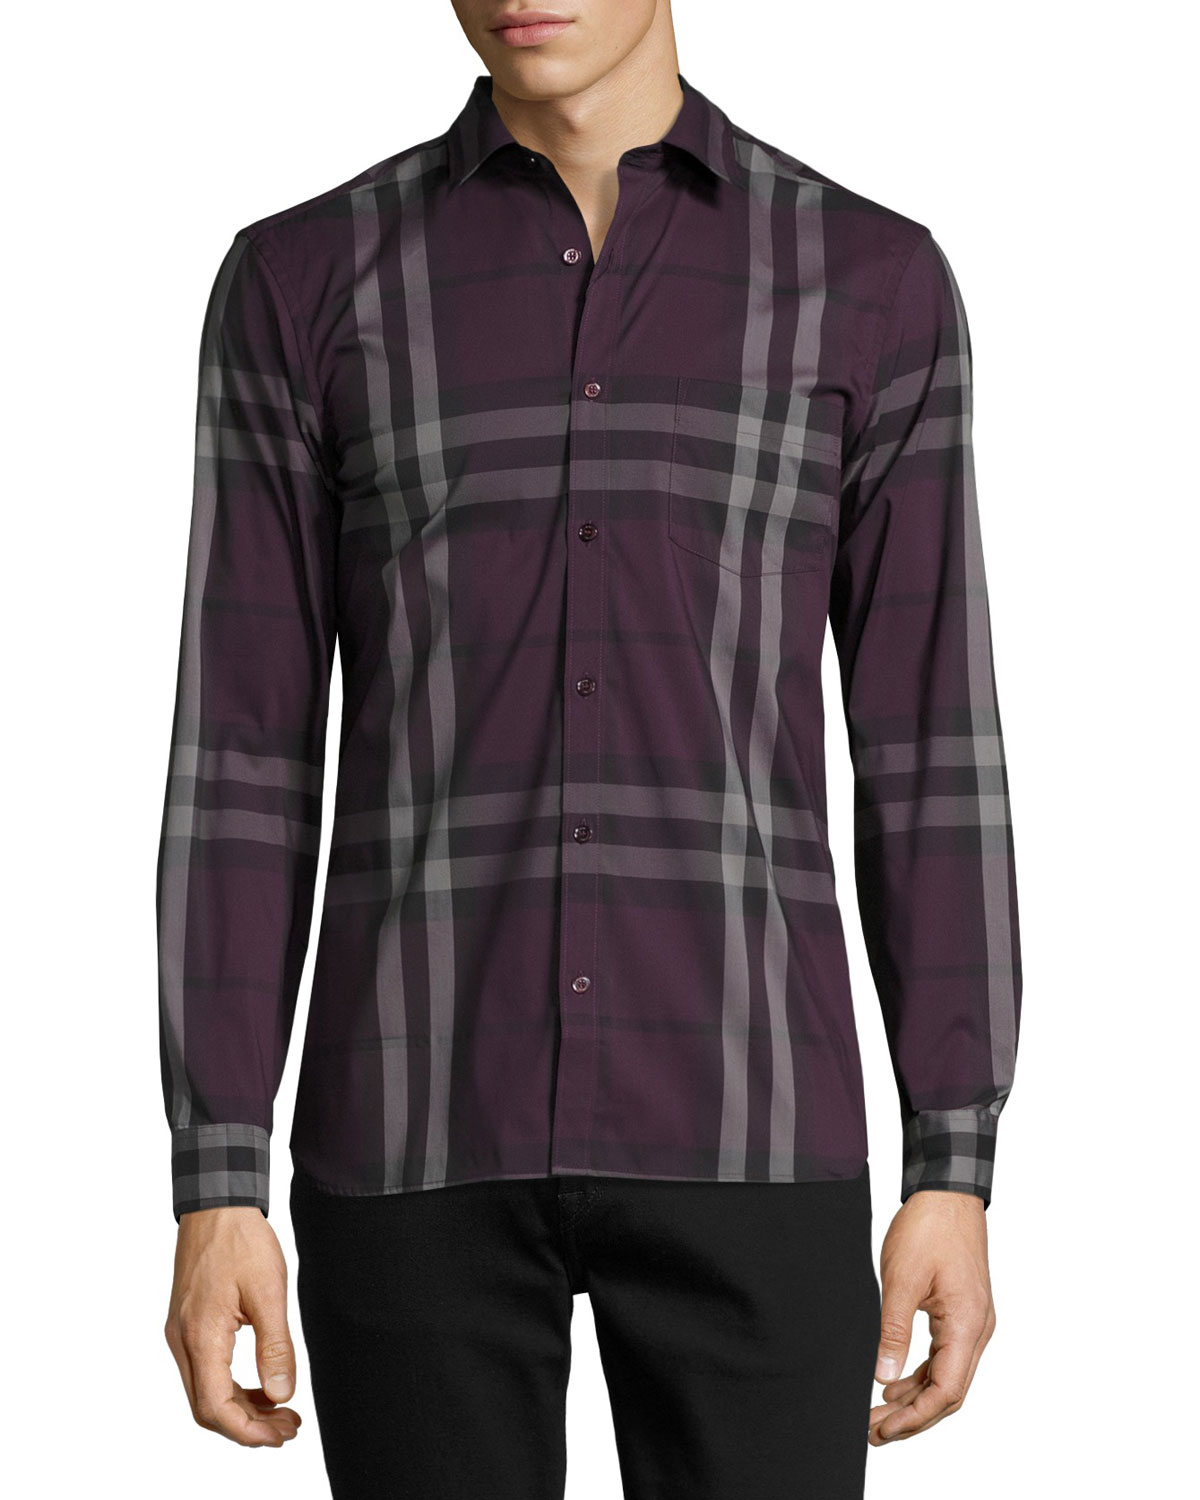 Nelson Check Stretch-Cotton Shirt, Dark Elderberry